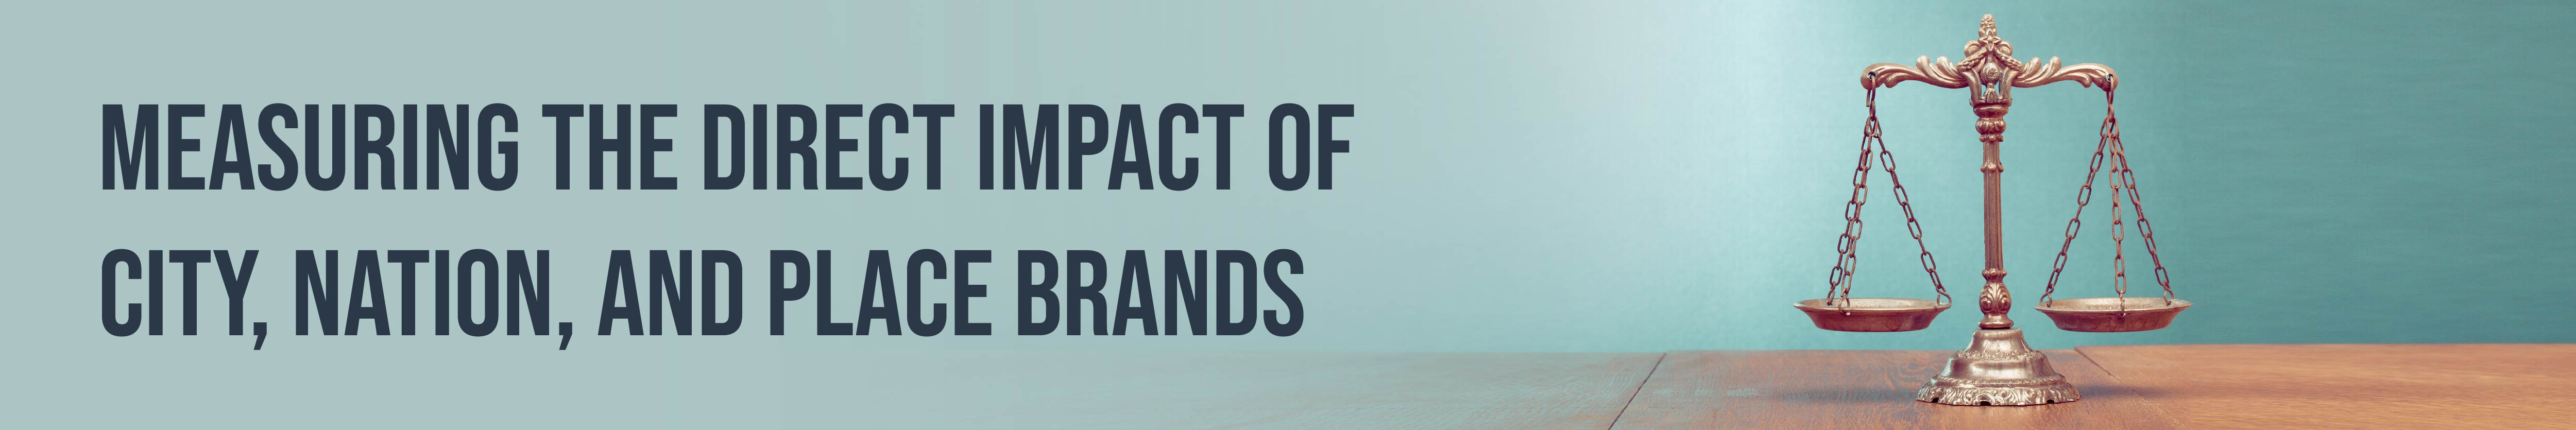 Measuring the direct impact of city, nation, and place brands